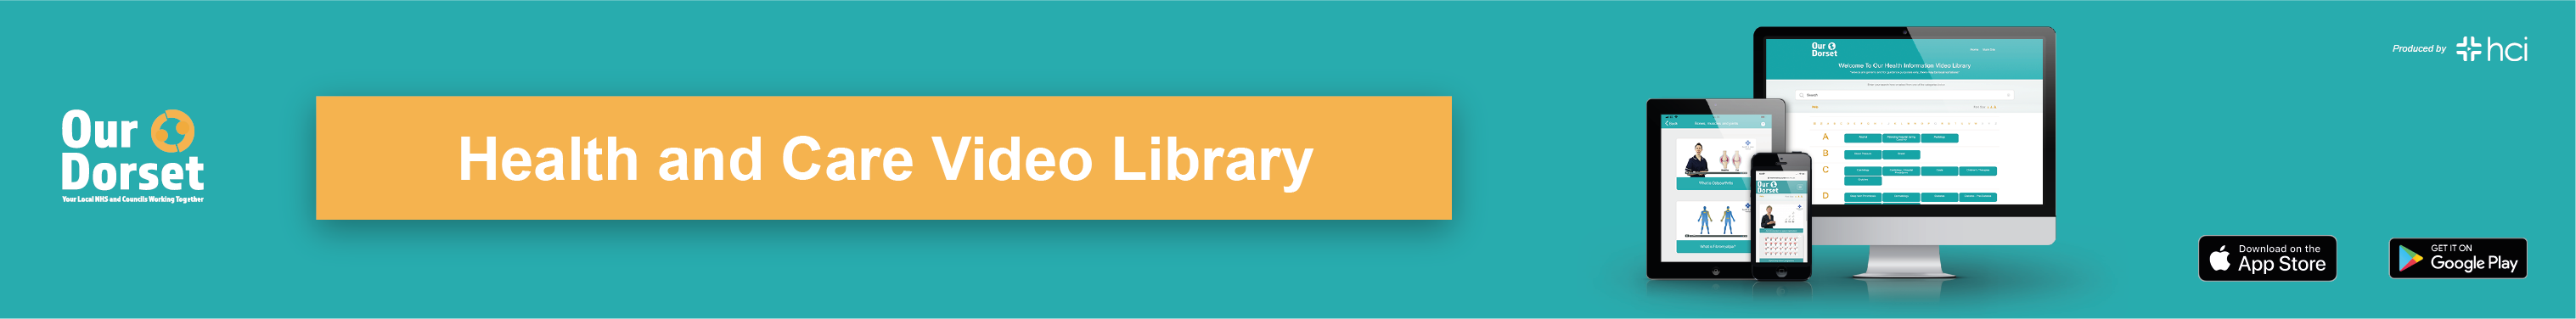 Health and care video library banner